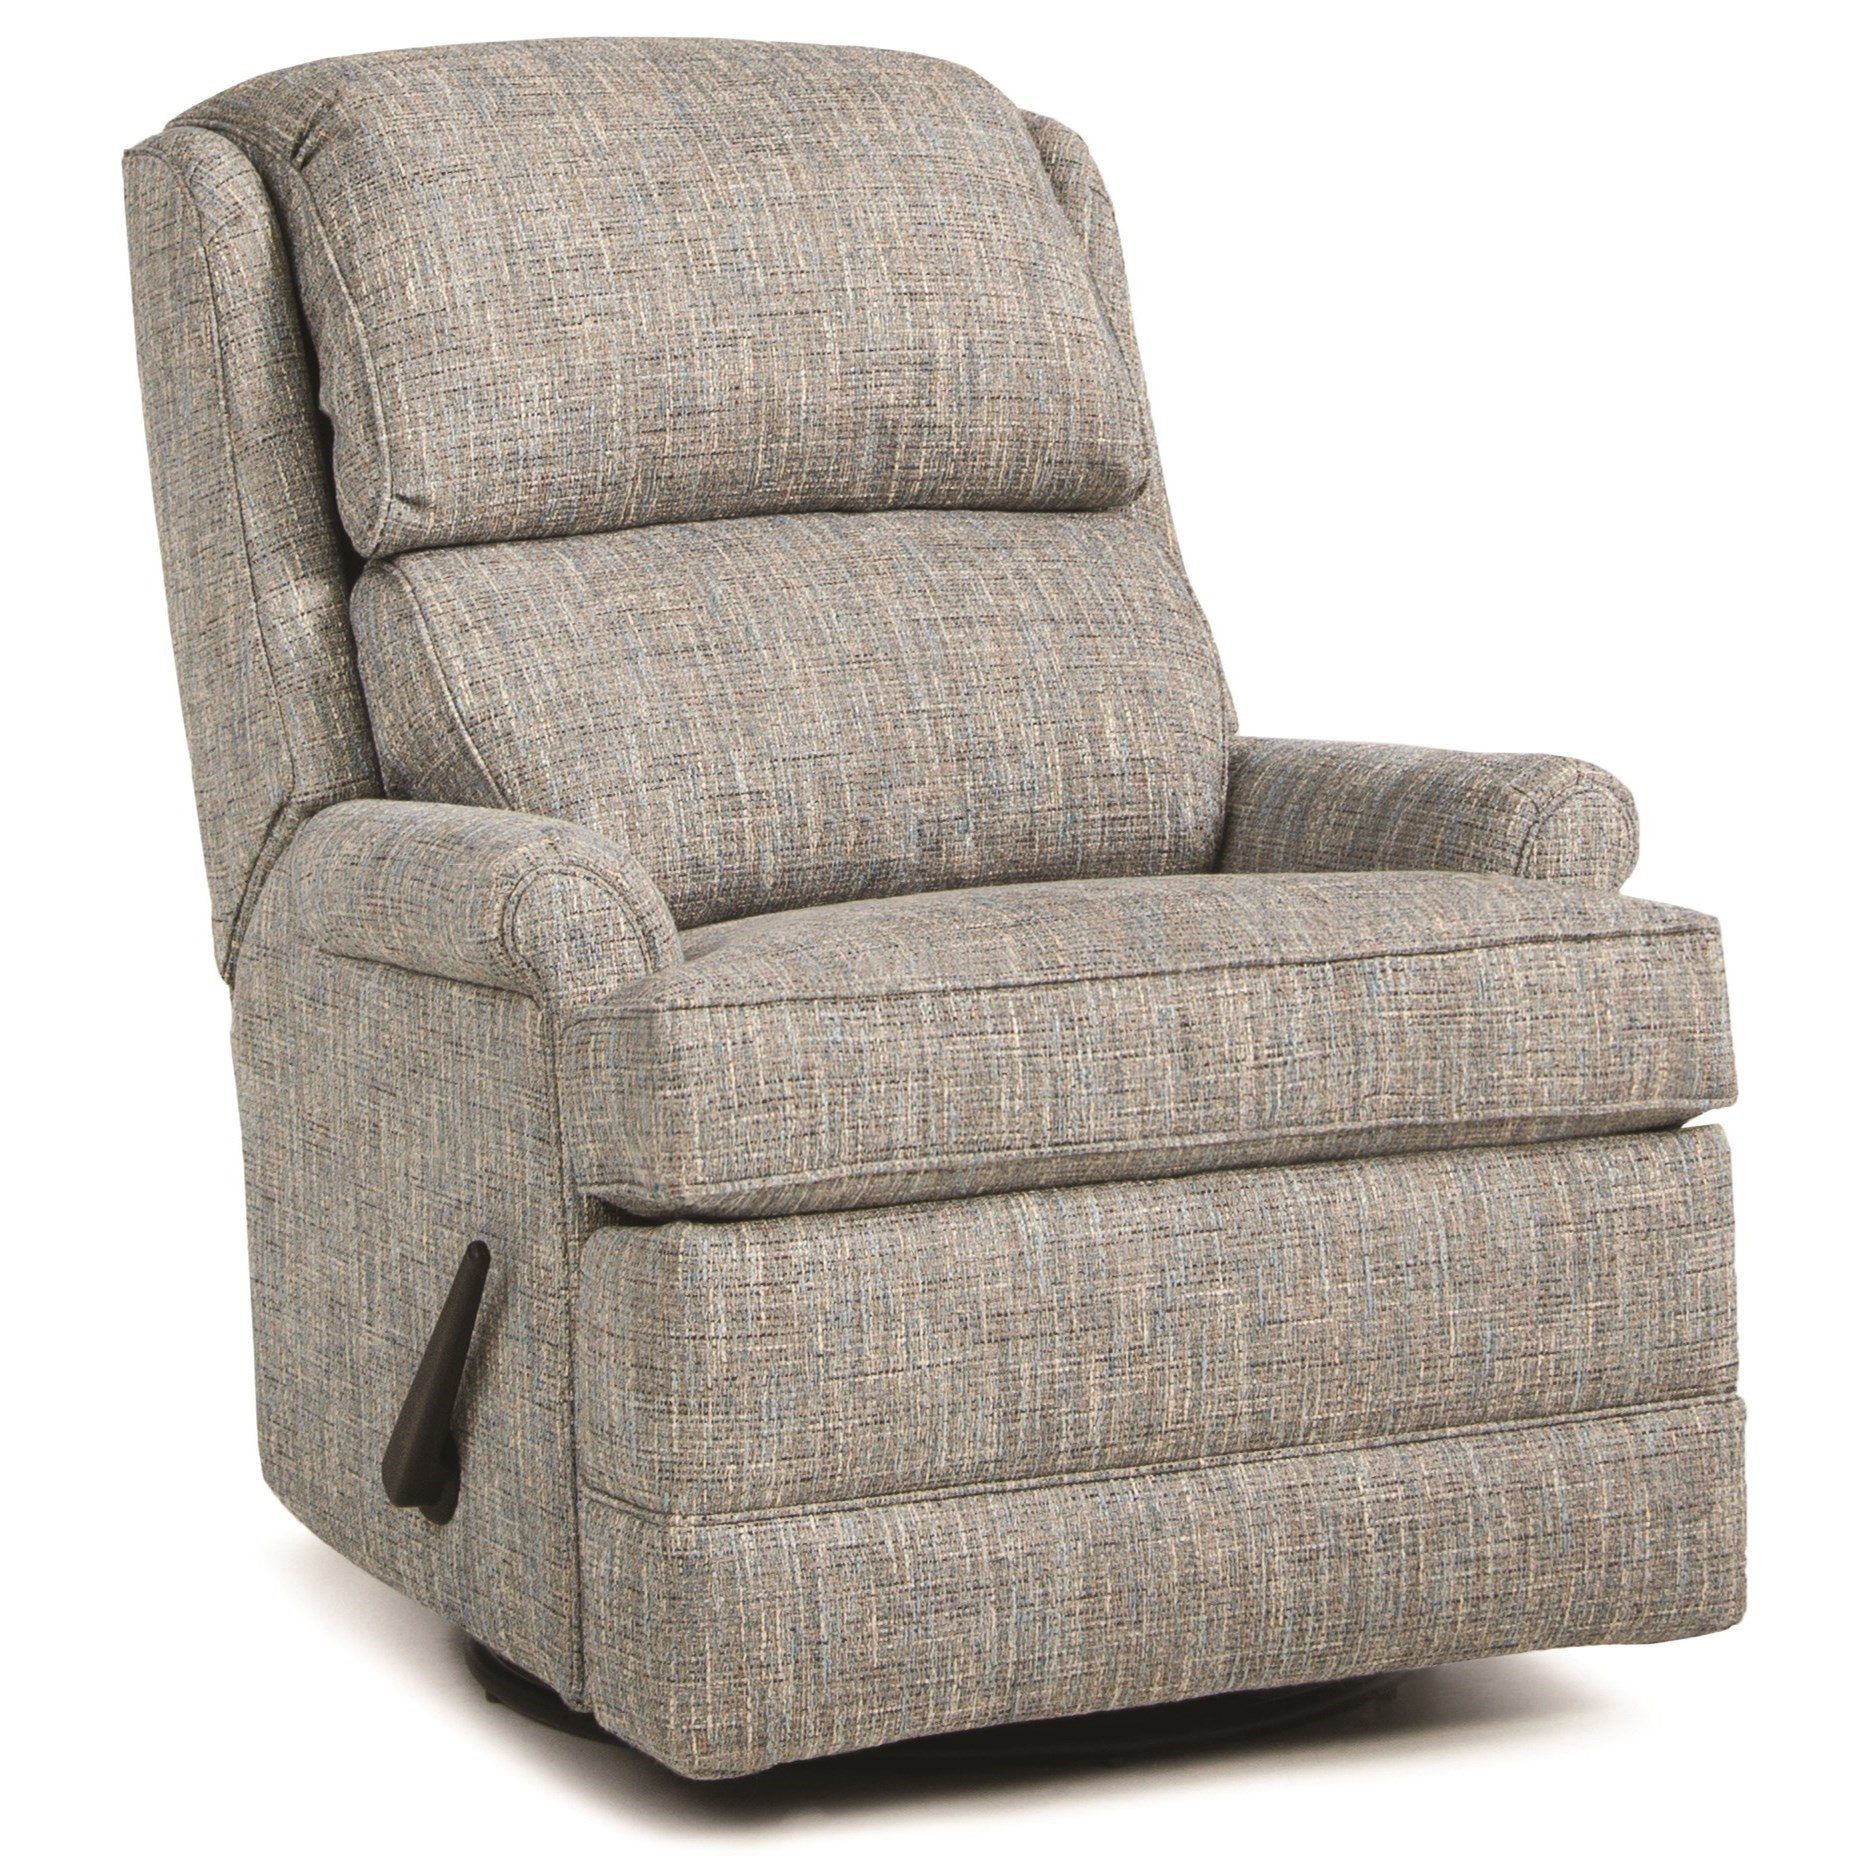 707 Recliner by Smith Brothers at Westrich Furniture & Appliances